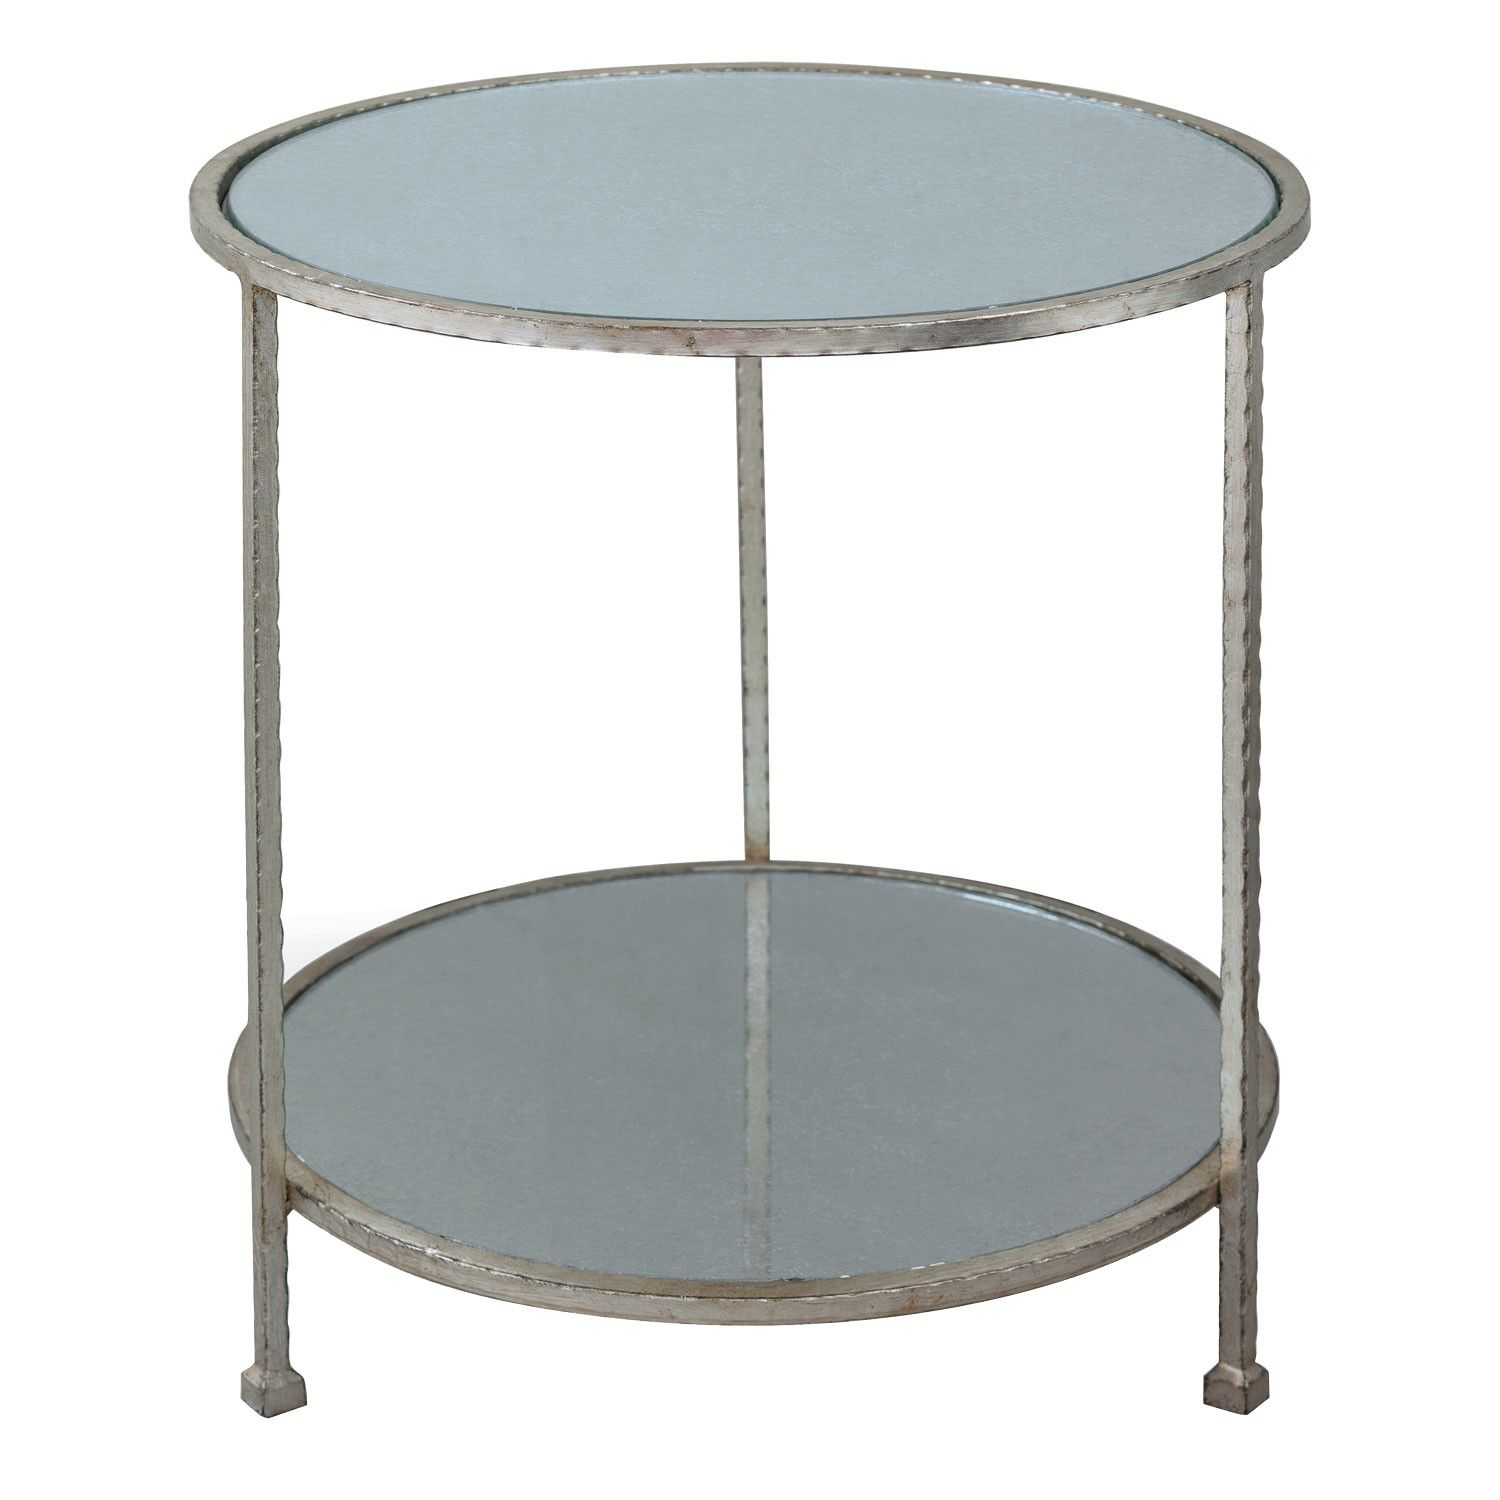 port harper silver table house round accent our end use next sofa with lamp between two chairs made aged leaf cast metal frame rustic gray green side craftsman style furniture